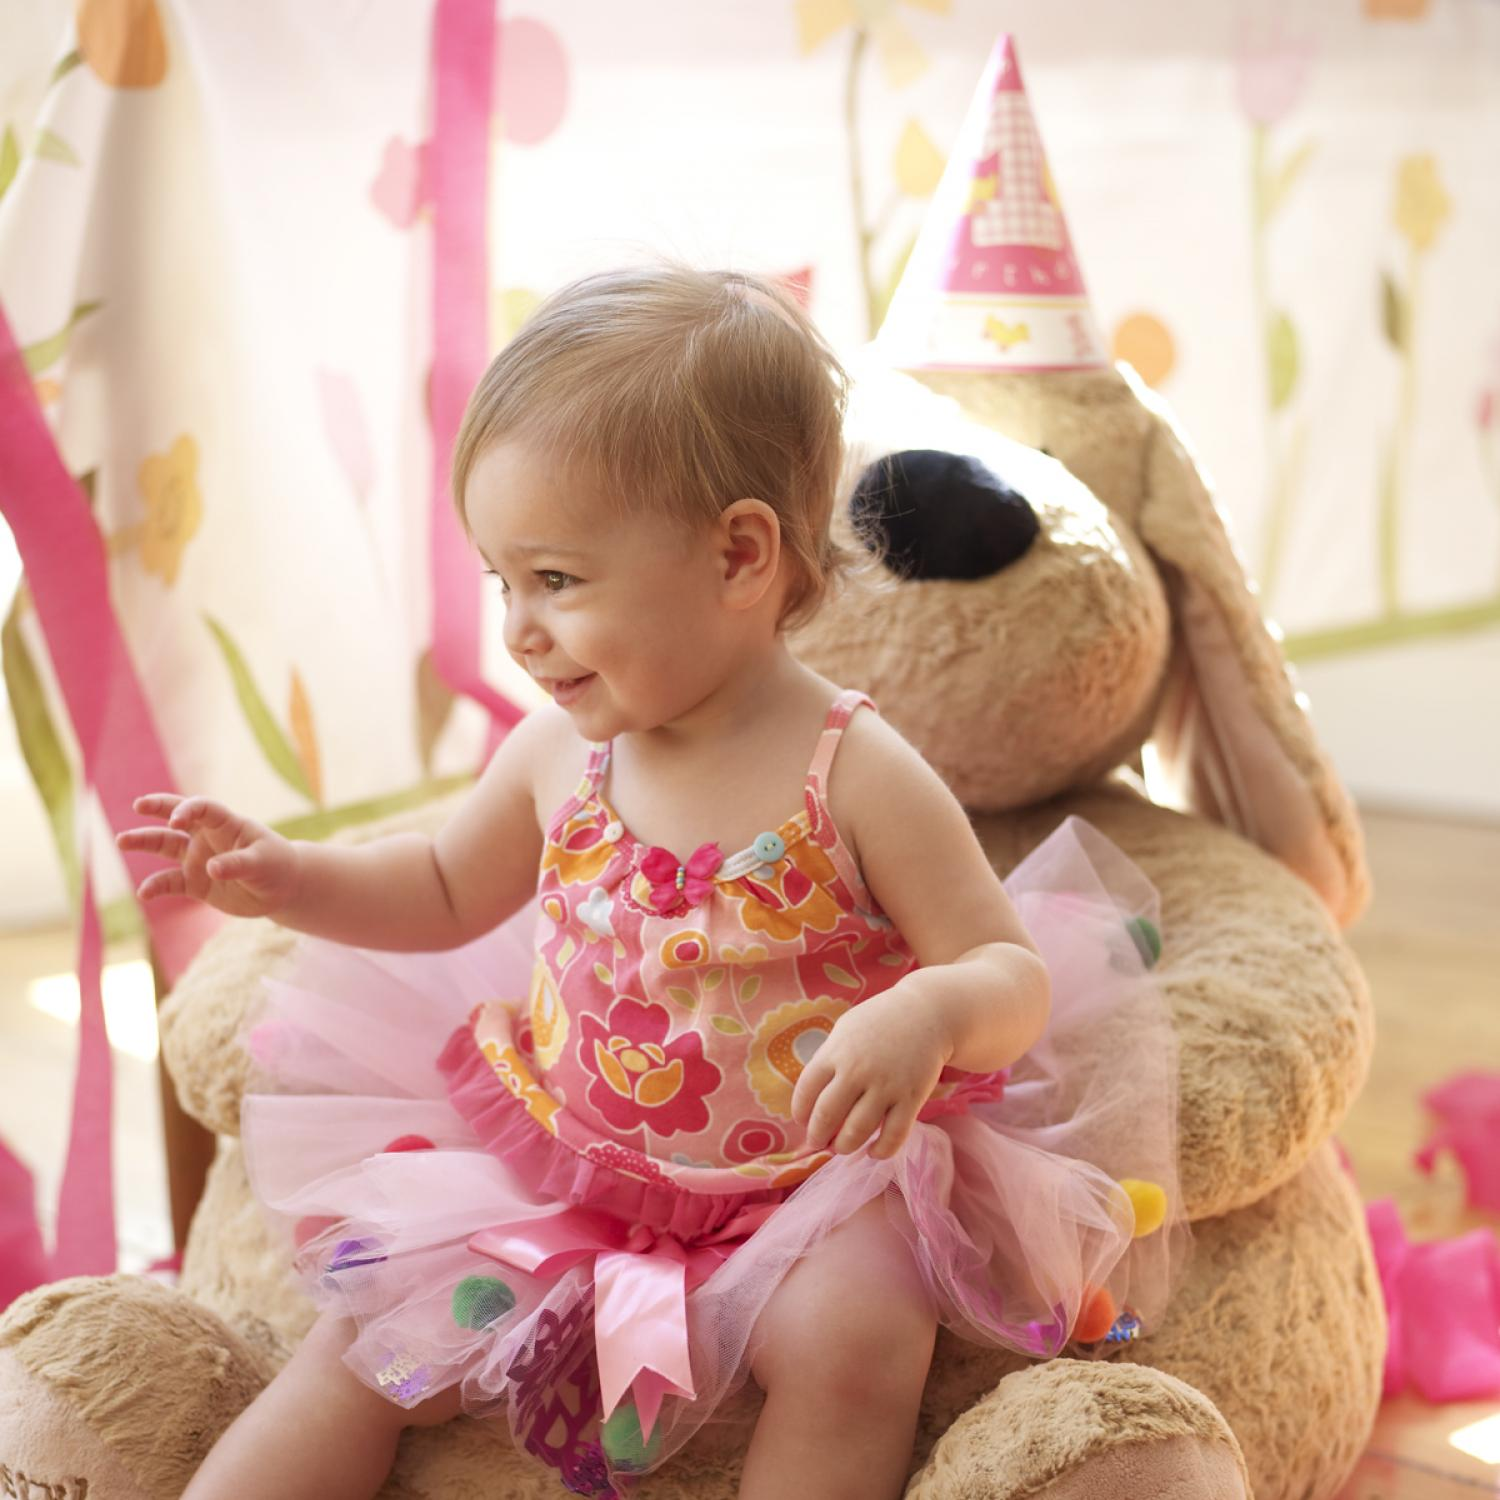 20 fun baby's 1st birthday party ideas | parenting